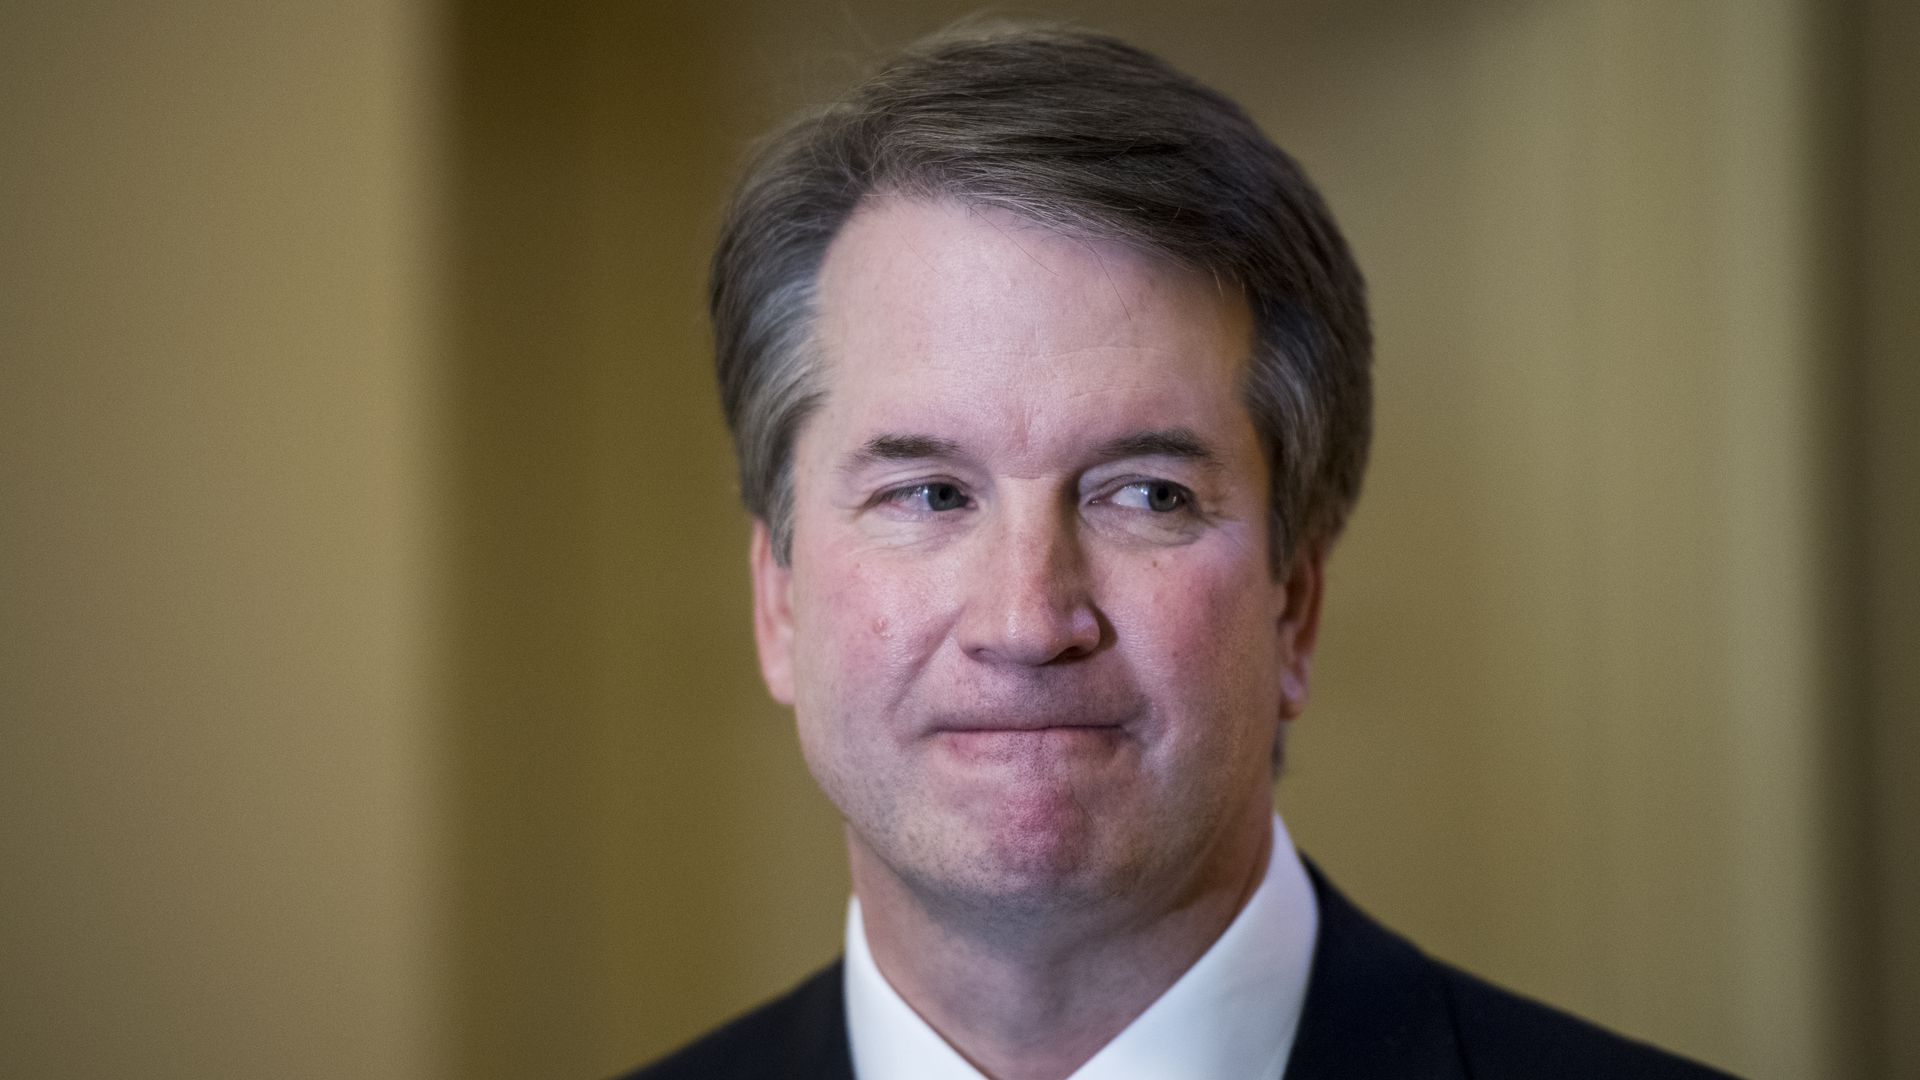 Close up of Brett Kavanaugh biting his lip